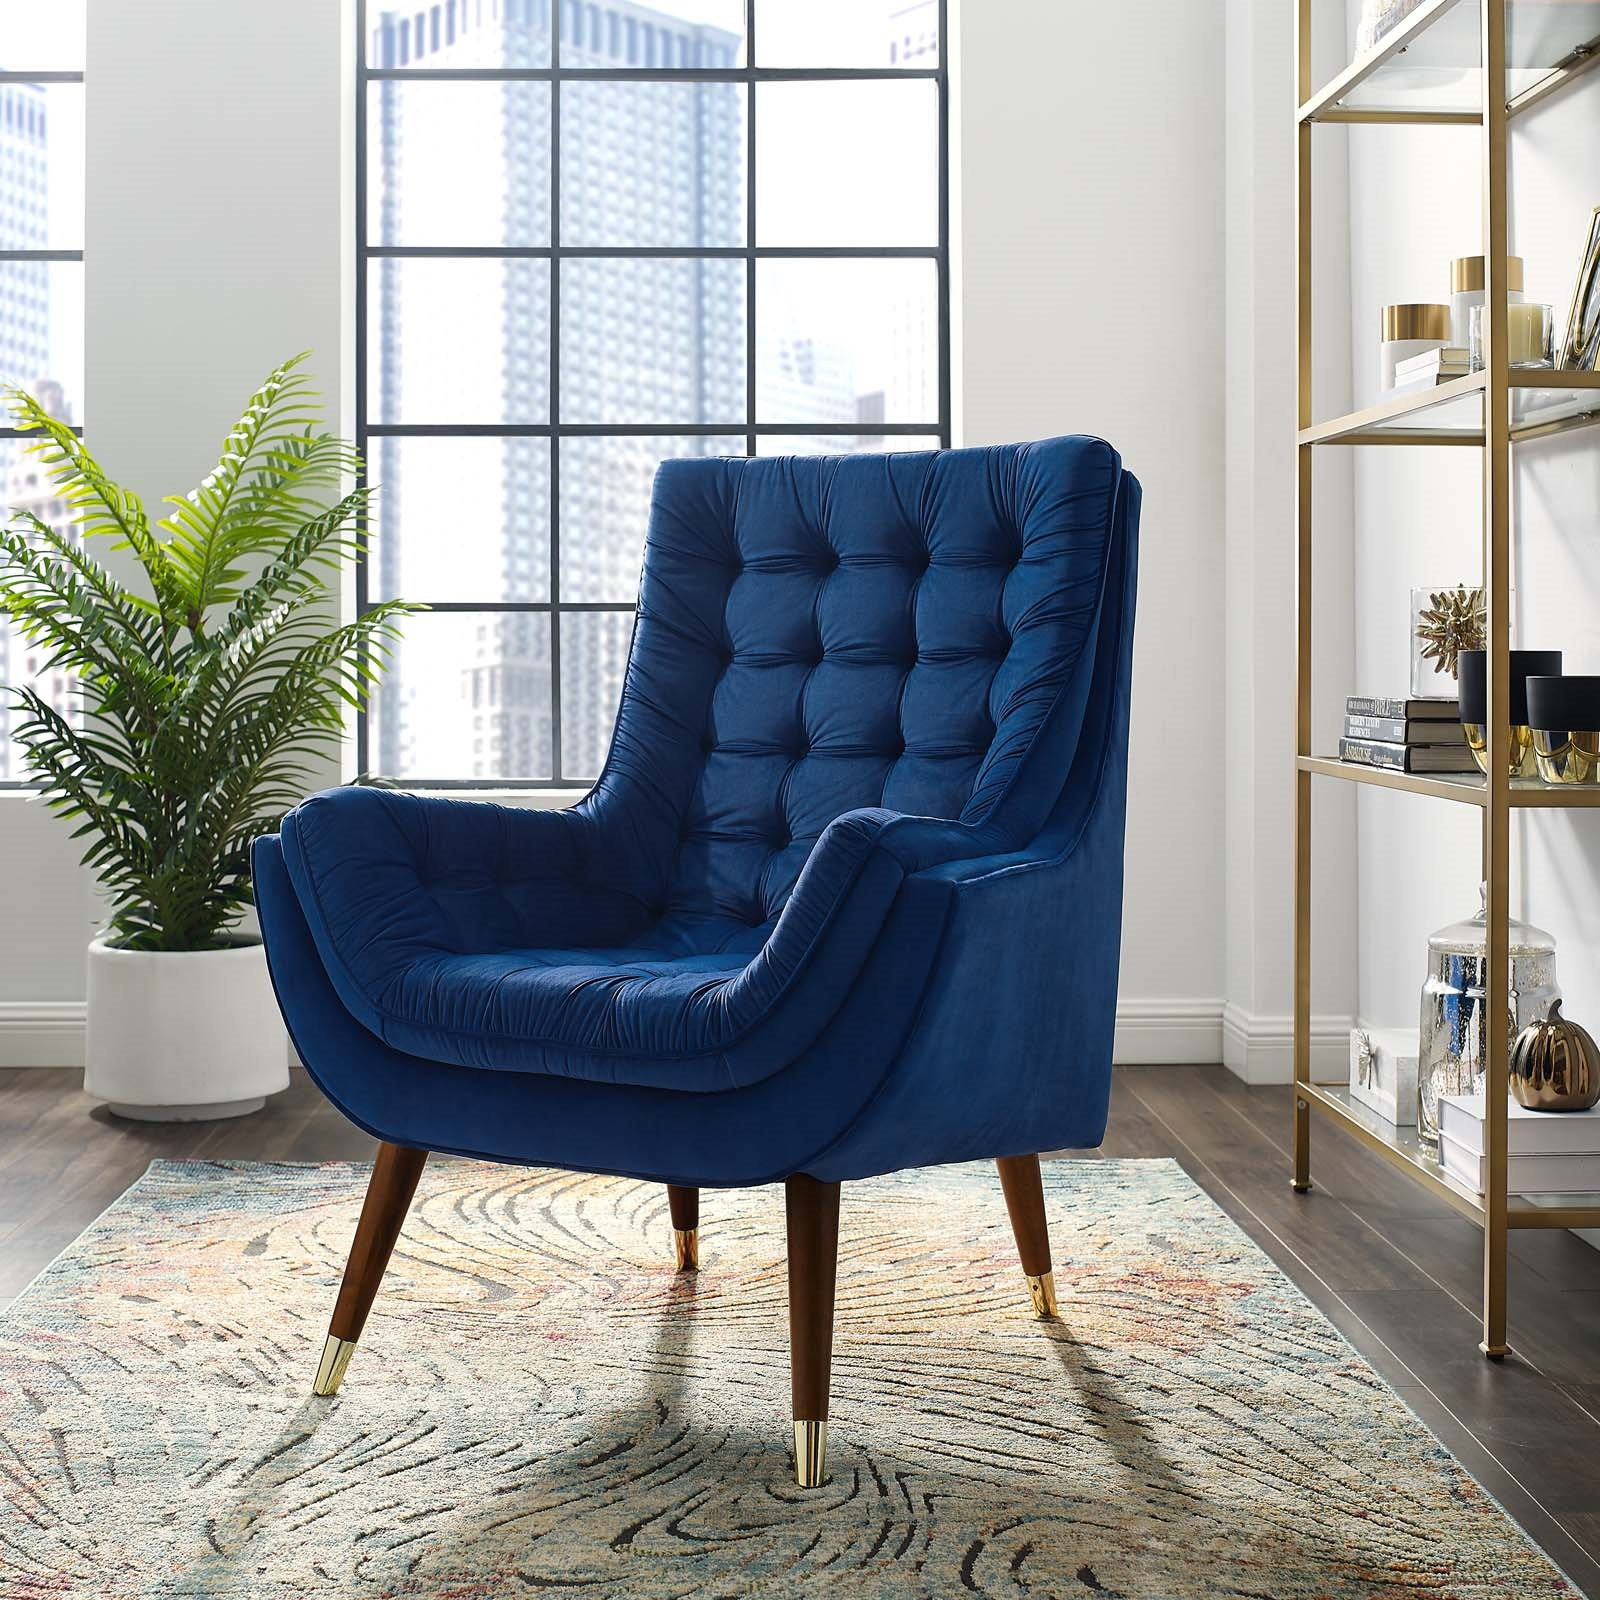 Suggest Button Tufted Performance Velvet Lounge Chair in Navy